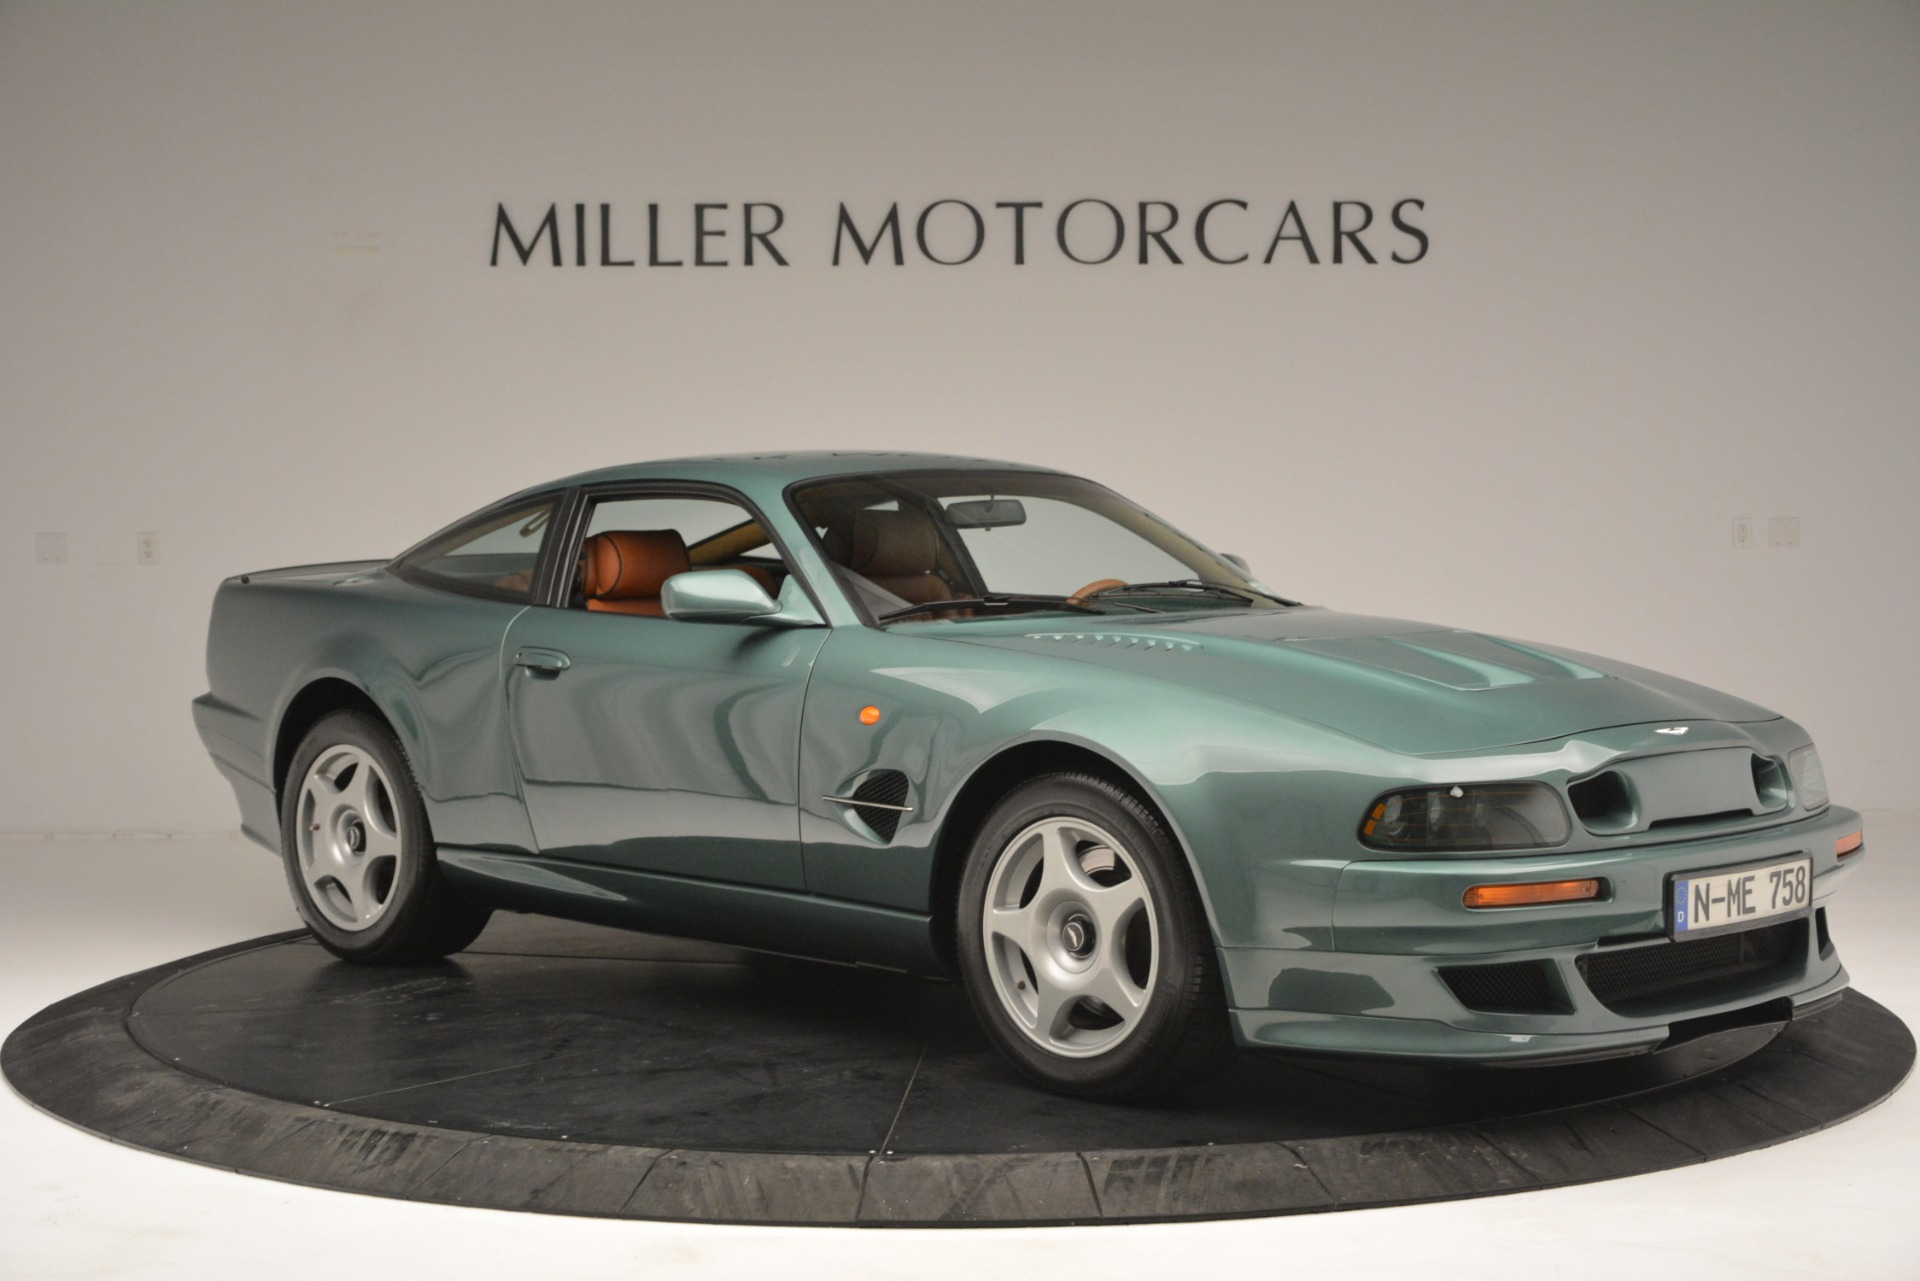 Used 1999 Aston Martin V8 Vantage Le Mans V600 Coupe For Sale In Westport, CT 2789_p12